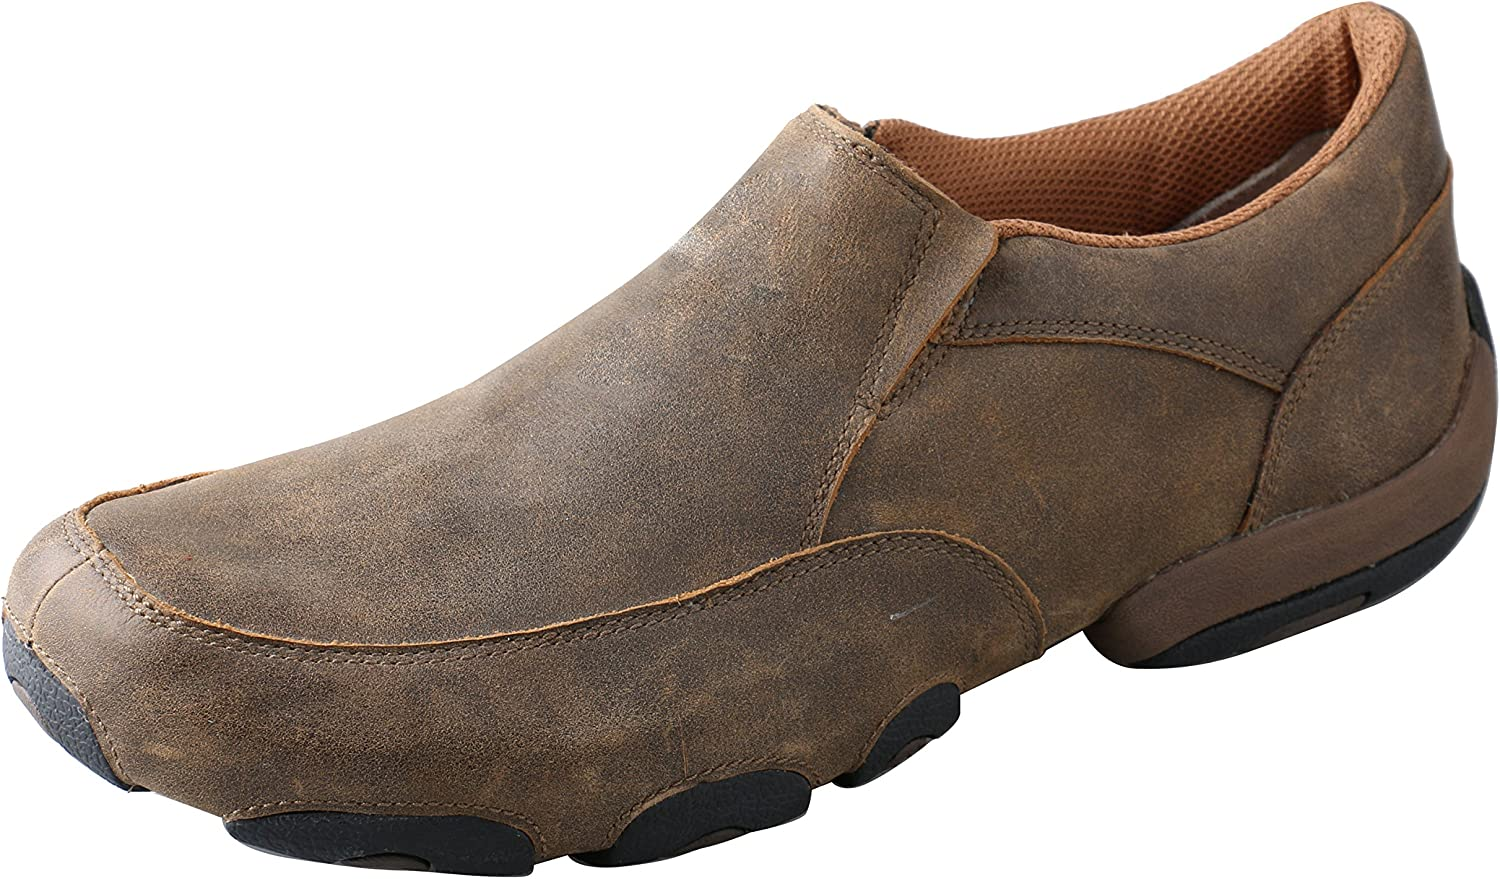 Twisted X Men's Slip-On Driving Moccasins Bomber Bomber - Casual Walking Leather Footwear